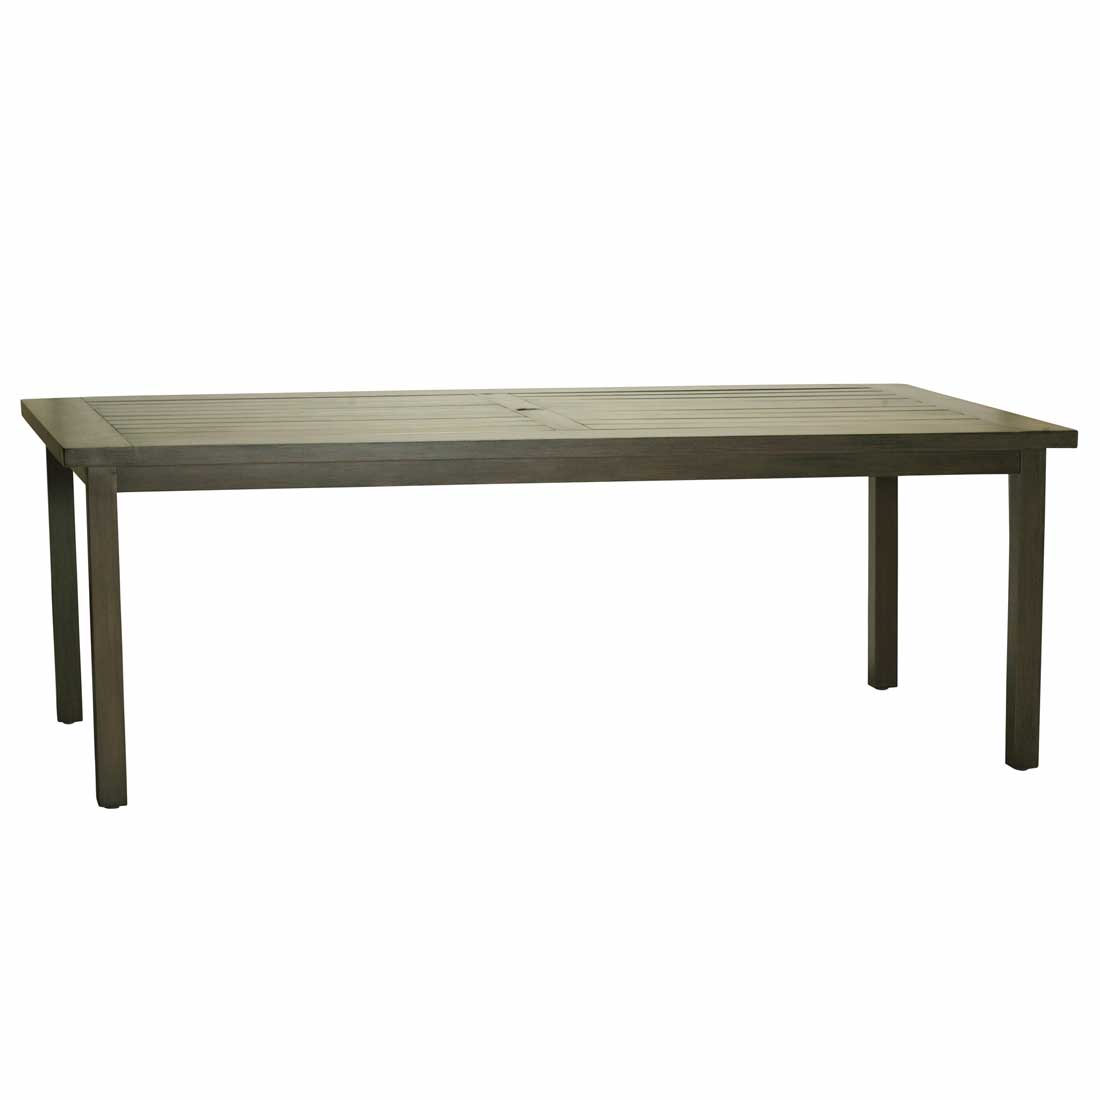 Club Aluminum Rectangular Dining Table Outdoor - Aluminum dining table